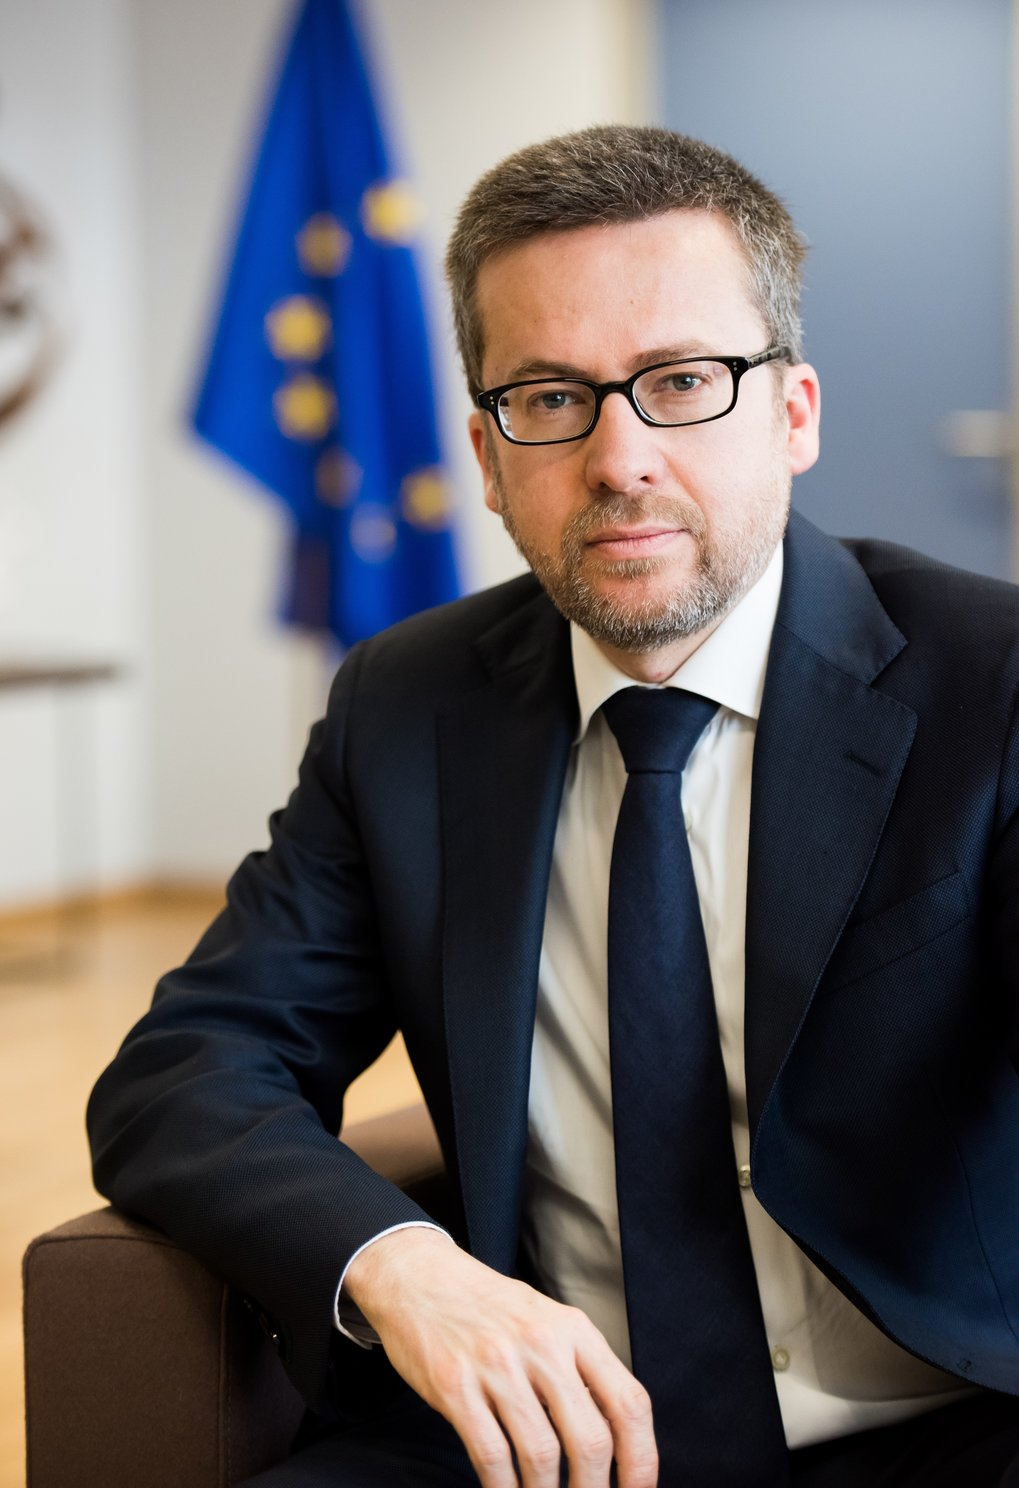 Carlos Moedas, European Commissioner for Research, Science and  Innovation